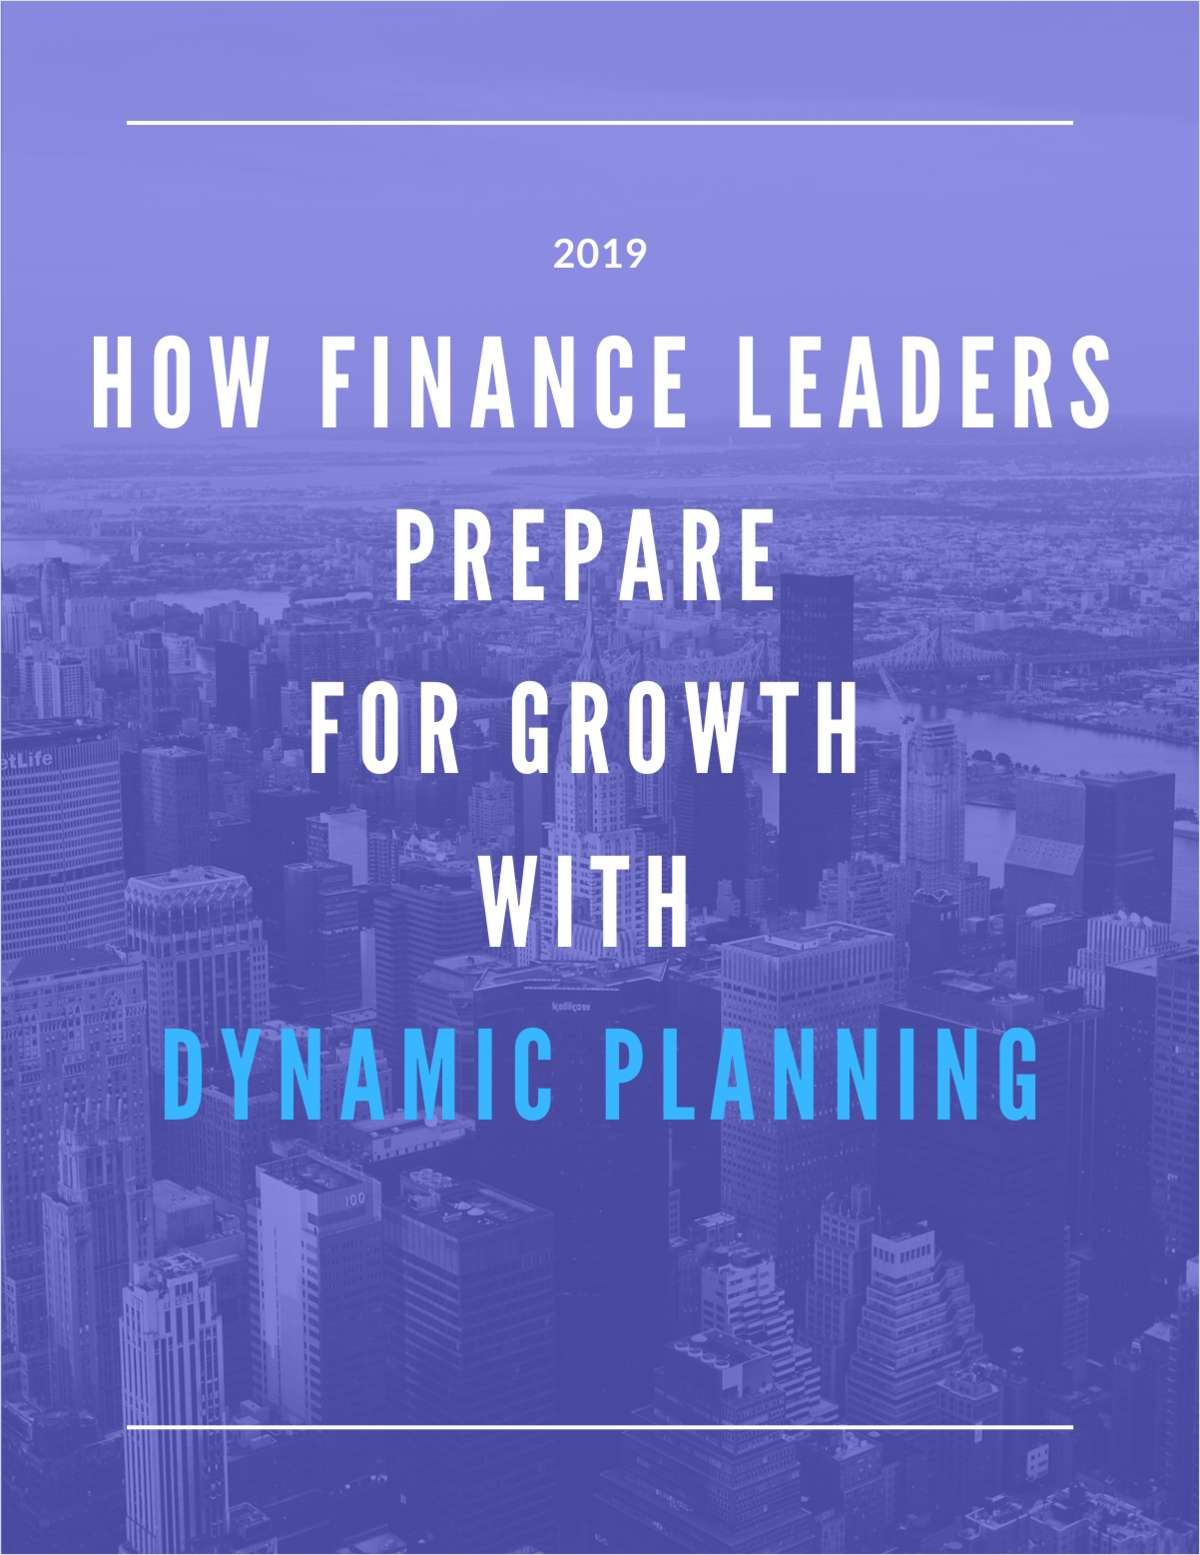 How Finance Leaders Prepare for Growth with Dynamic Planning